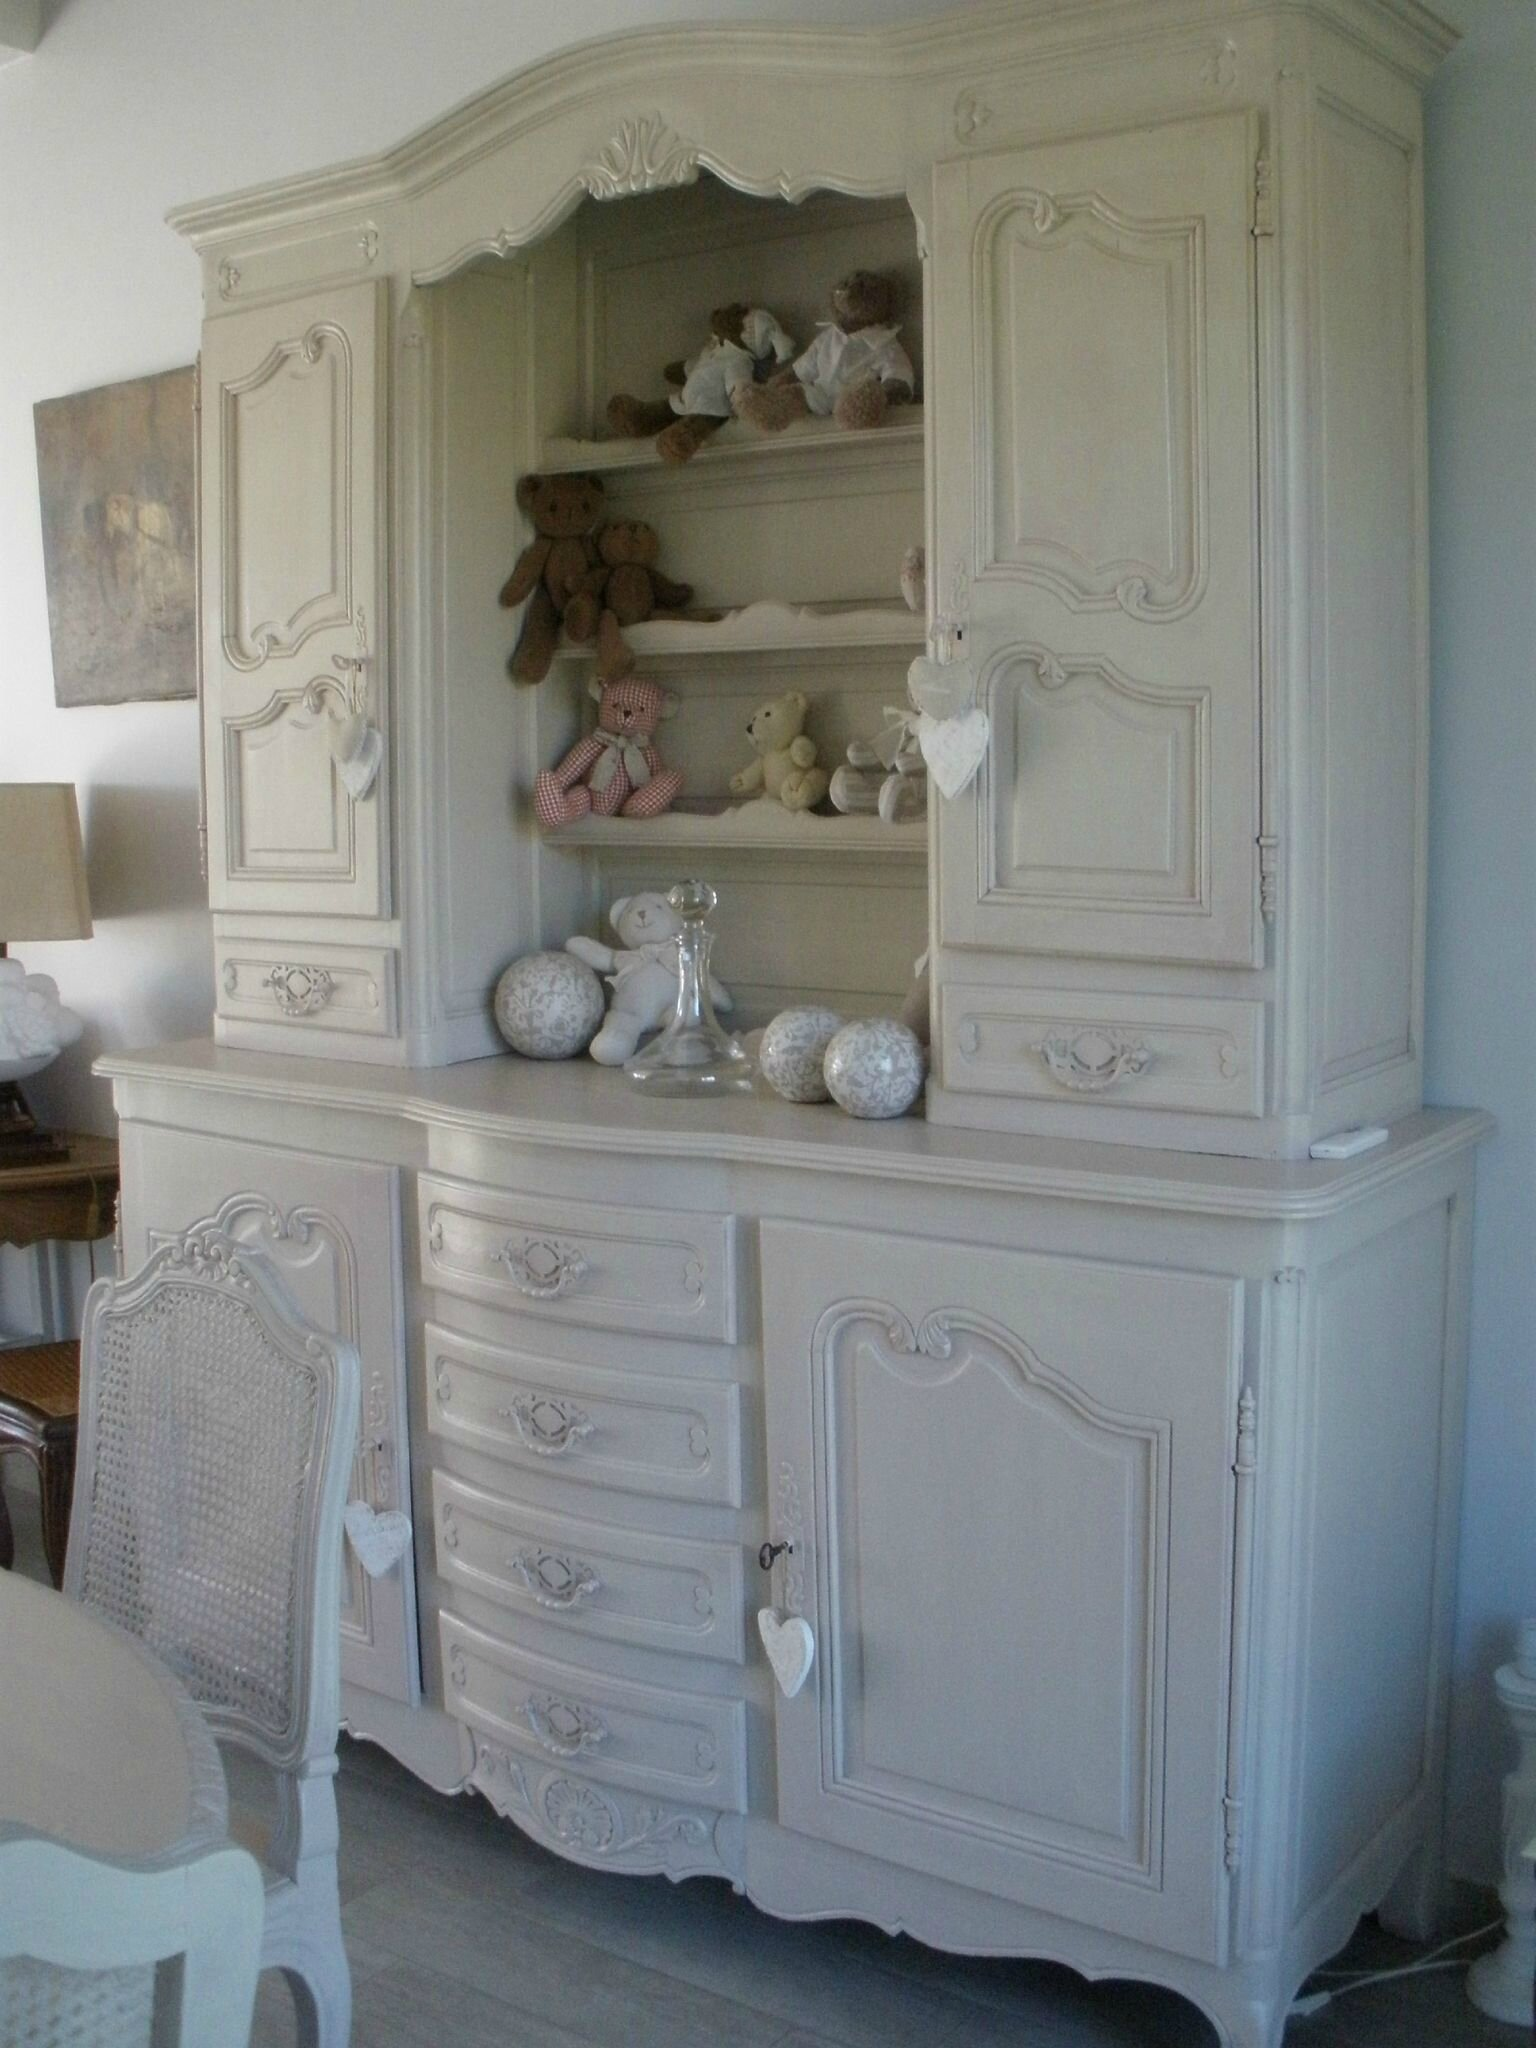 Bienvenue sur le blog d 39 ashley h relooke cuisine for Moderniser un meuble en chene